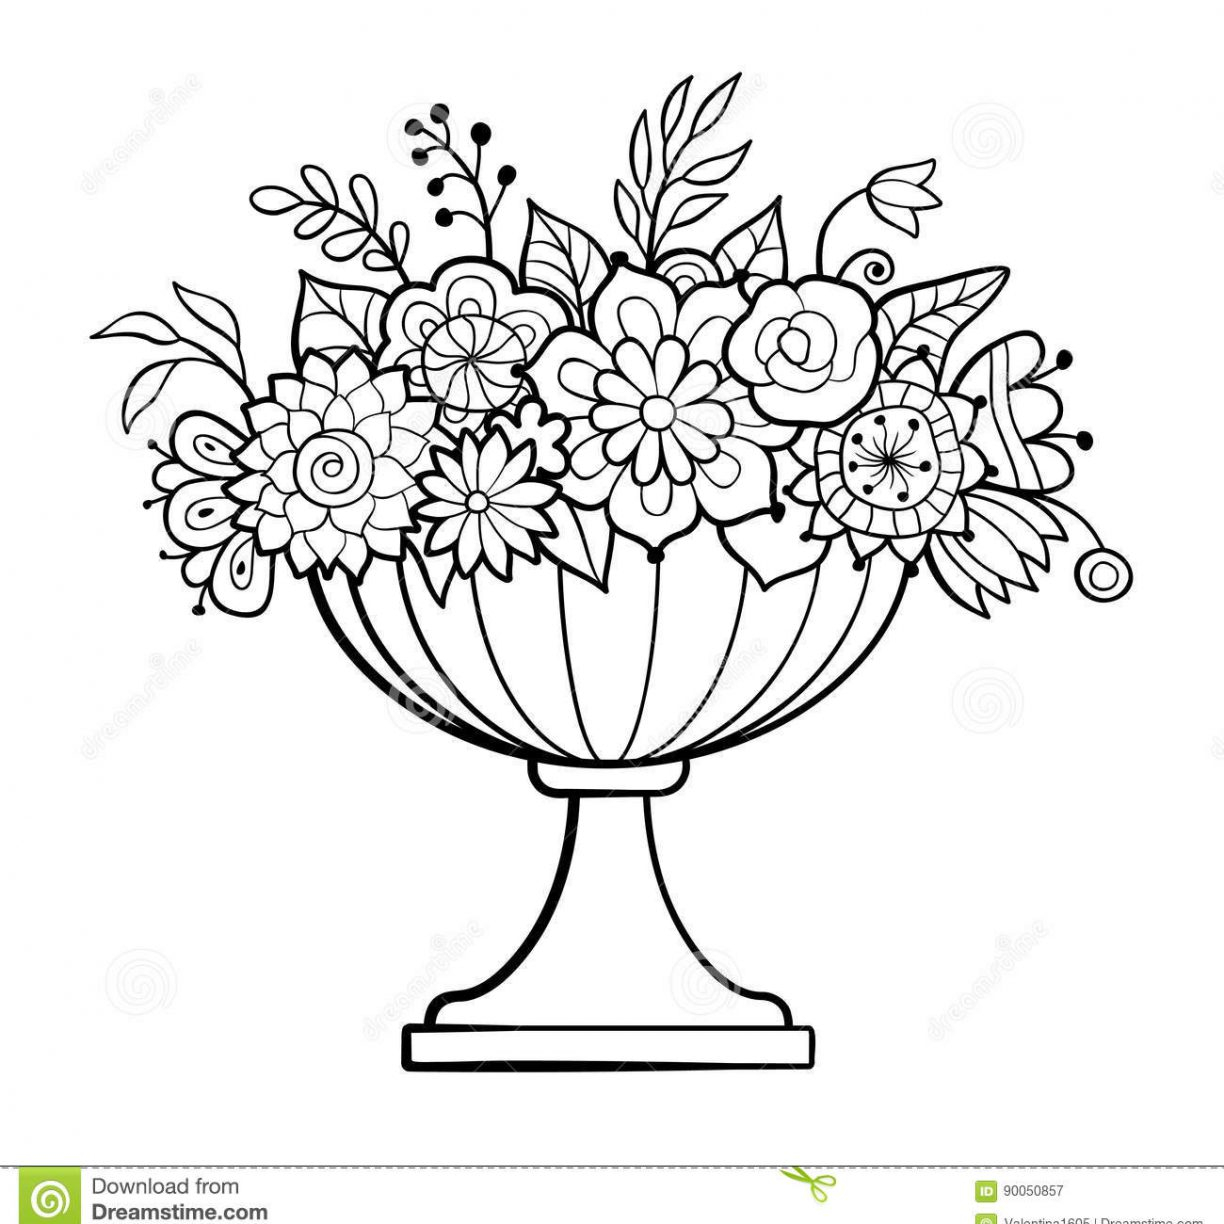 graphic about Printable Flower Pot identified as Flower Pot Coloring Site Flower Pot Coloring Site Vacant